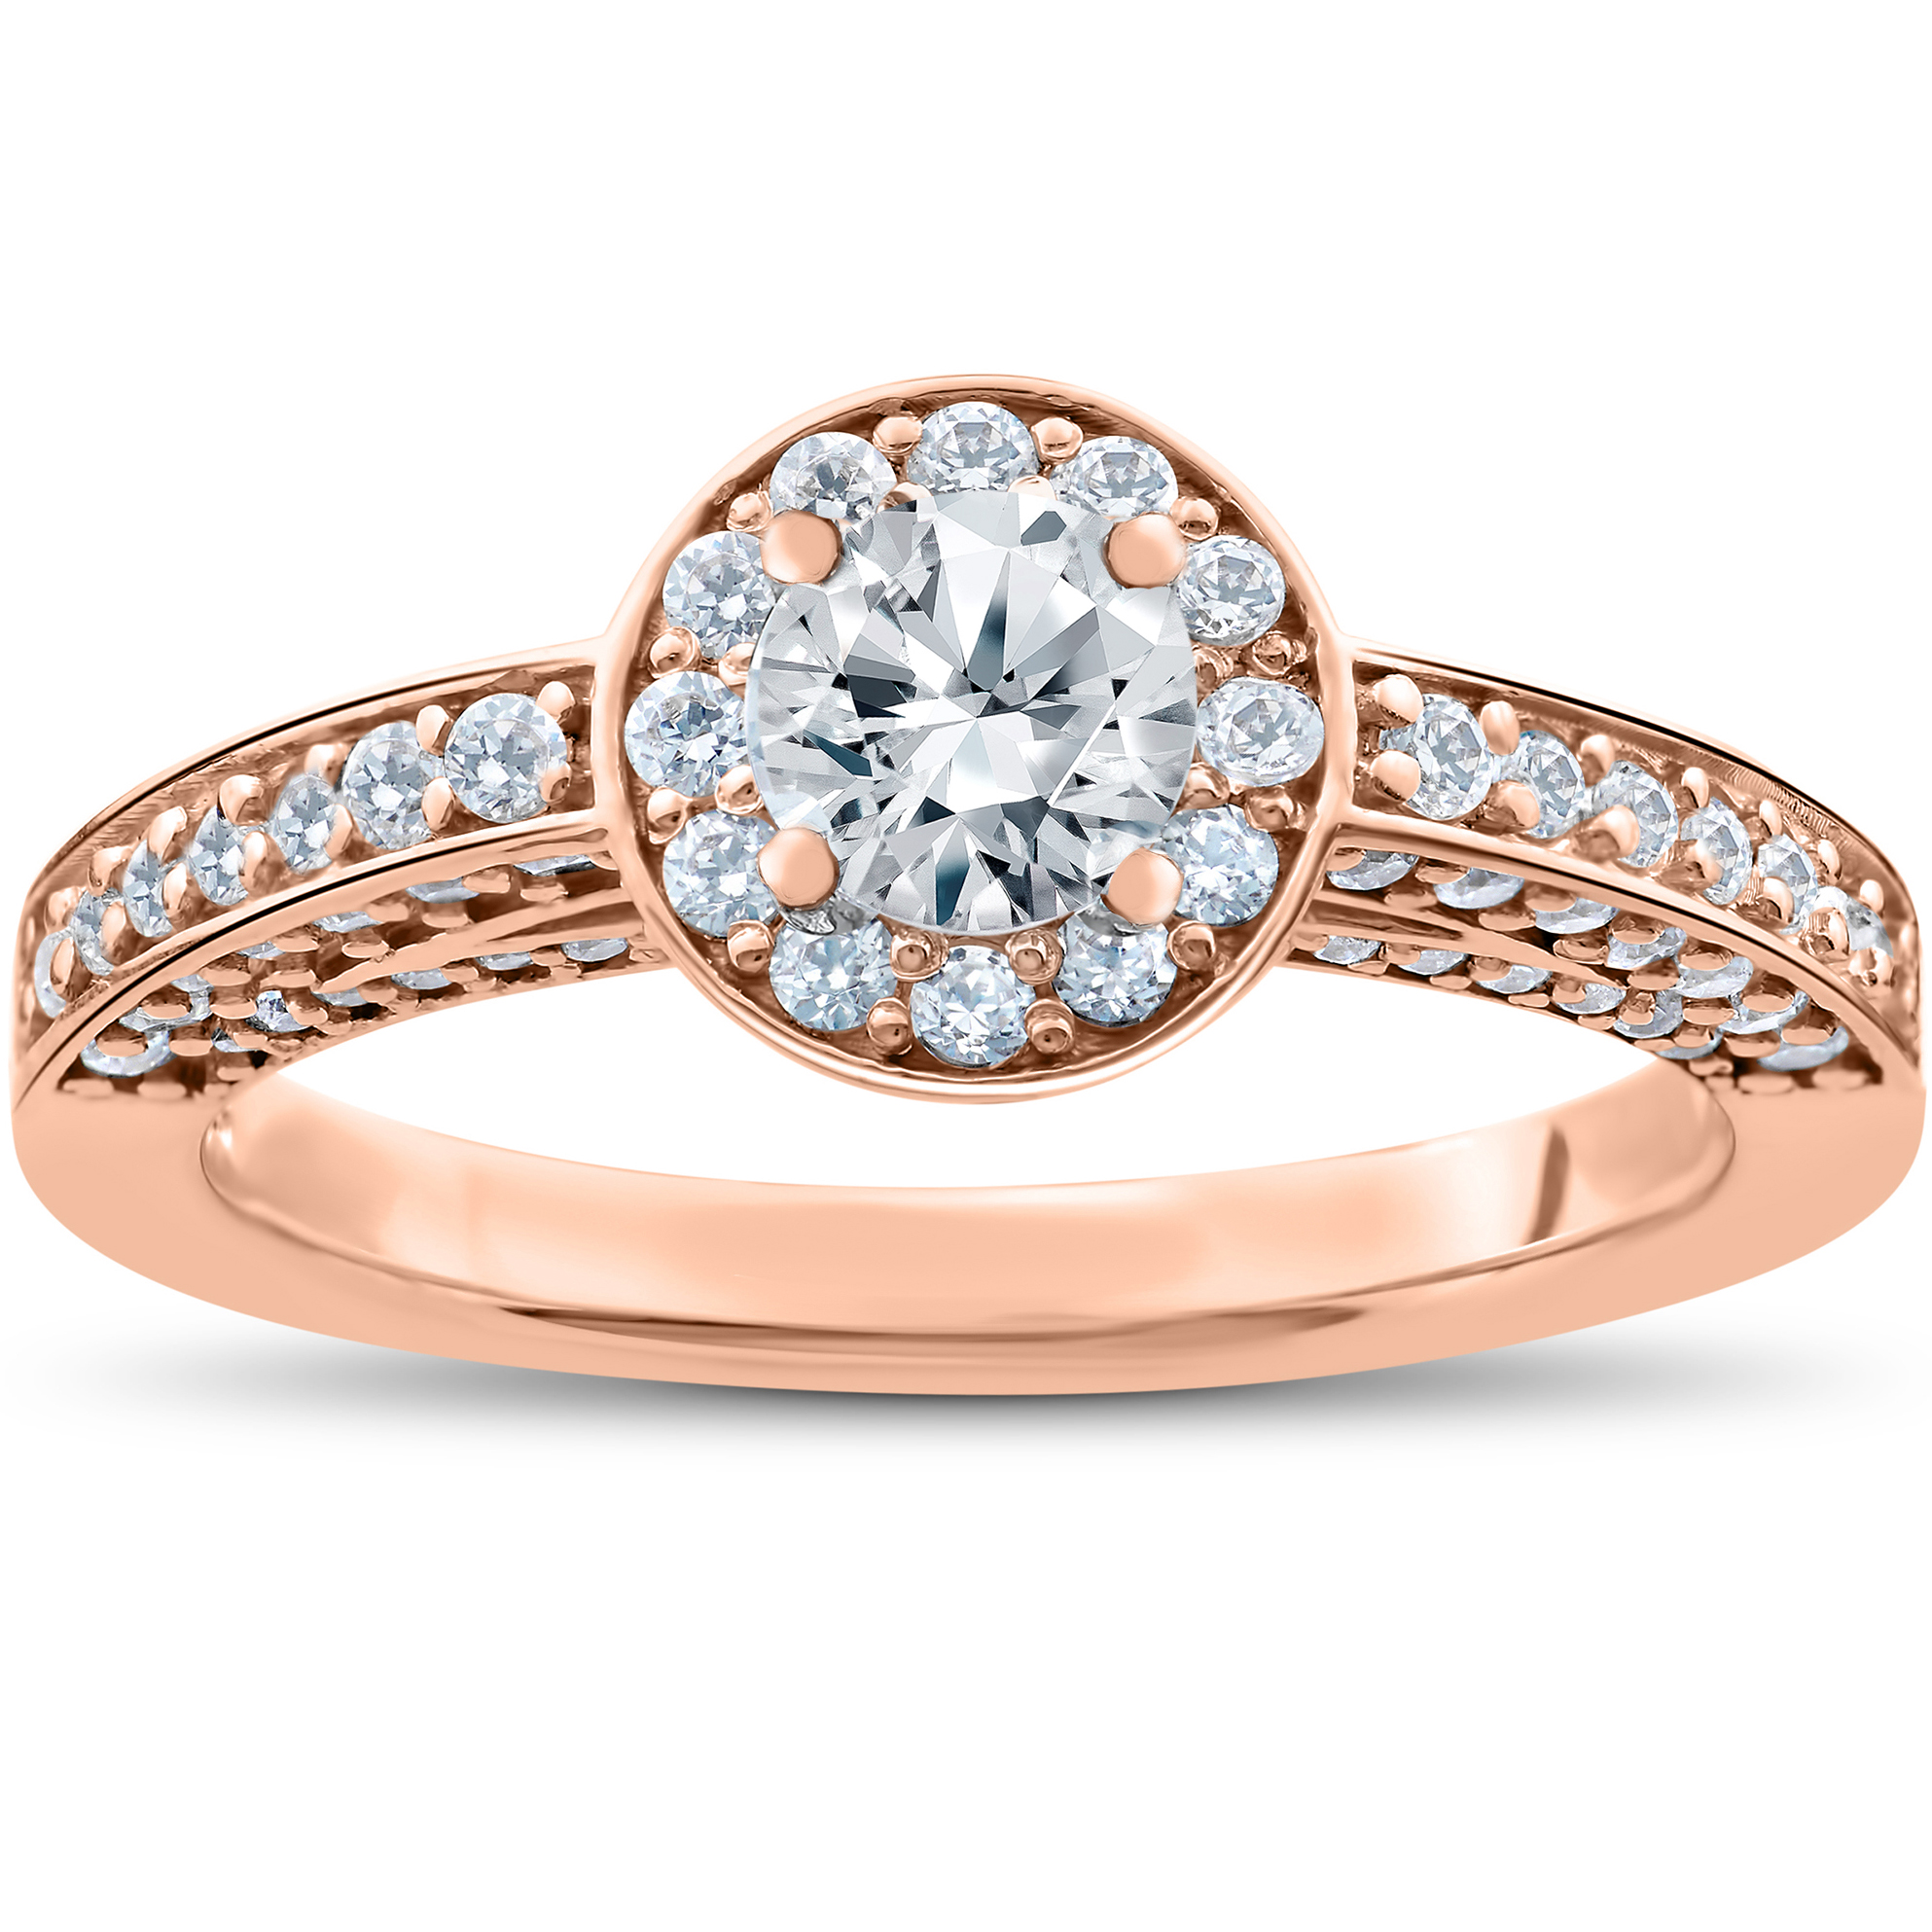 1 ct Diamond Halo Solitaire Engagement Ring 14k Rose Gold